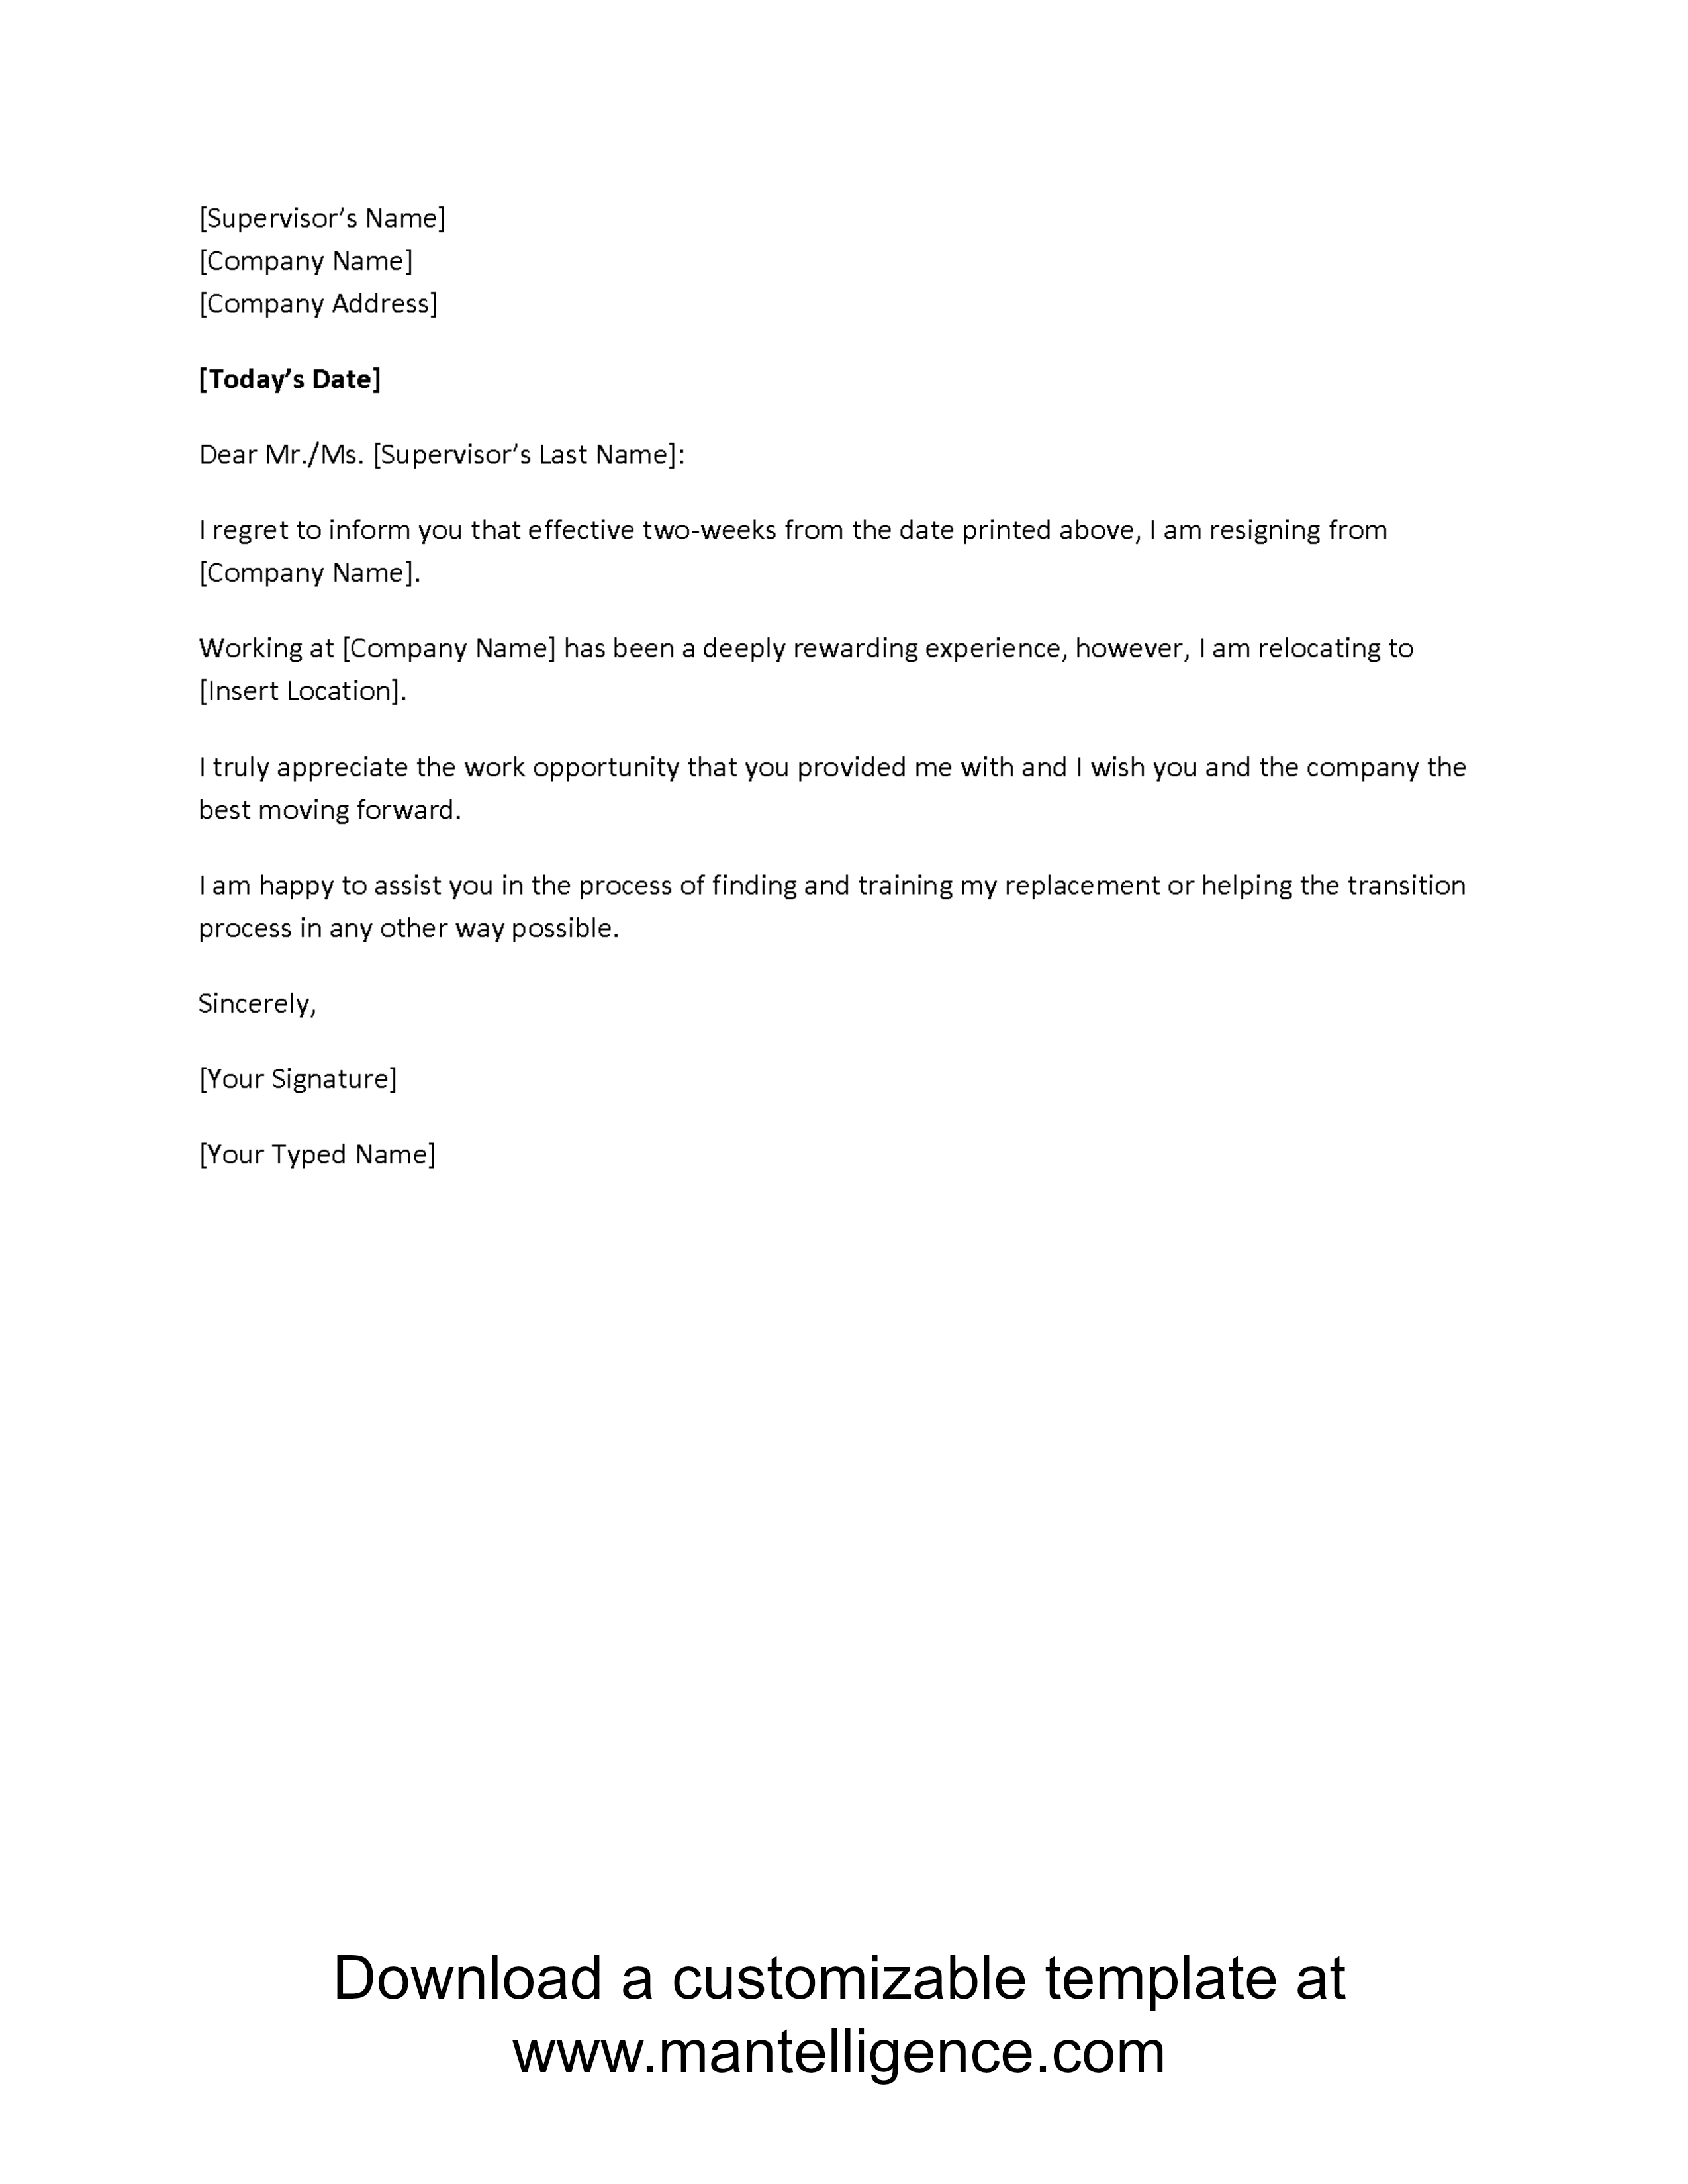 Missionary Prayer Letter Template - 3 Highly Professional Two Weeks Notice Letter Templates